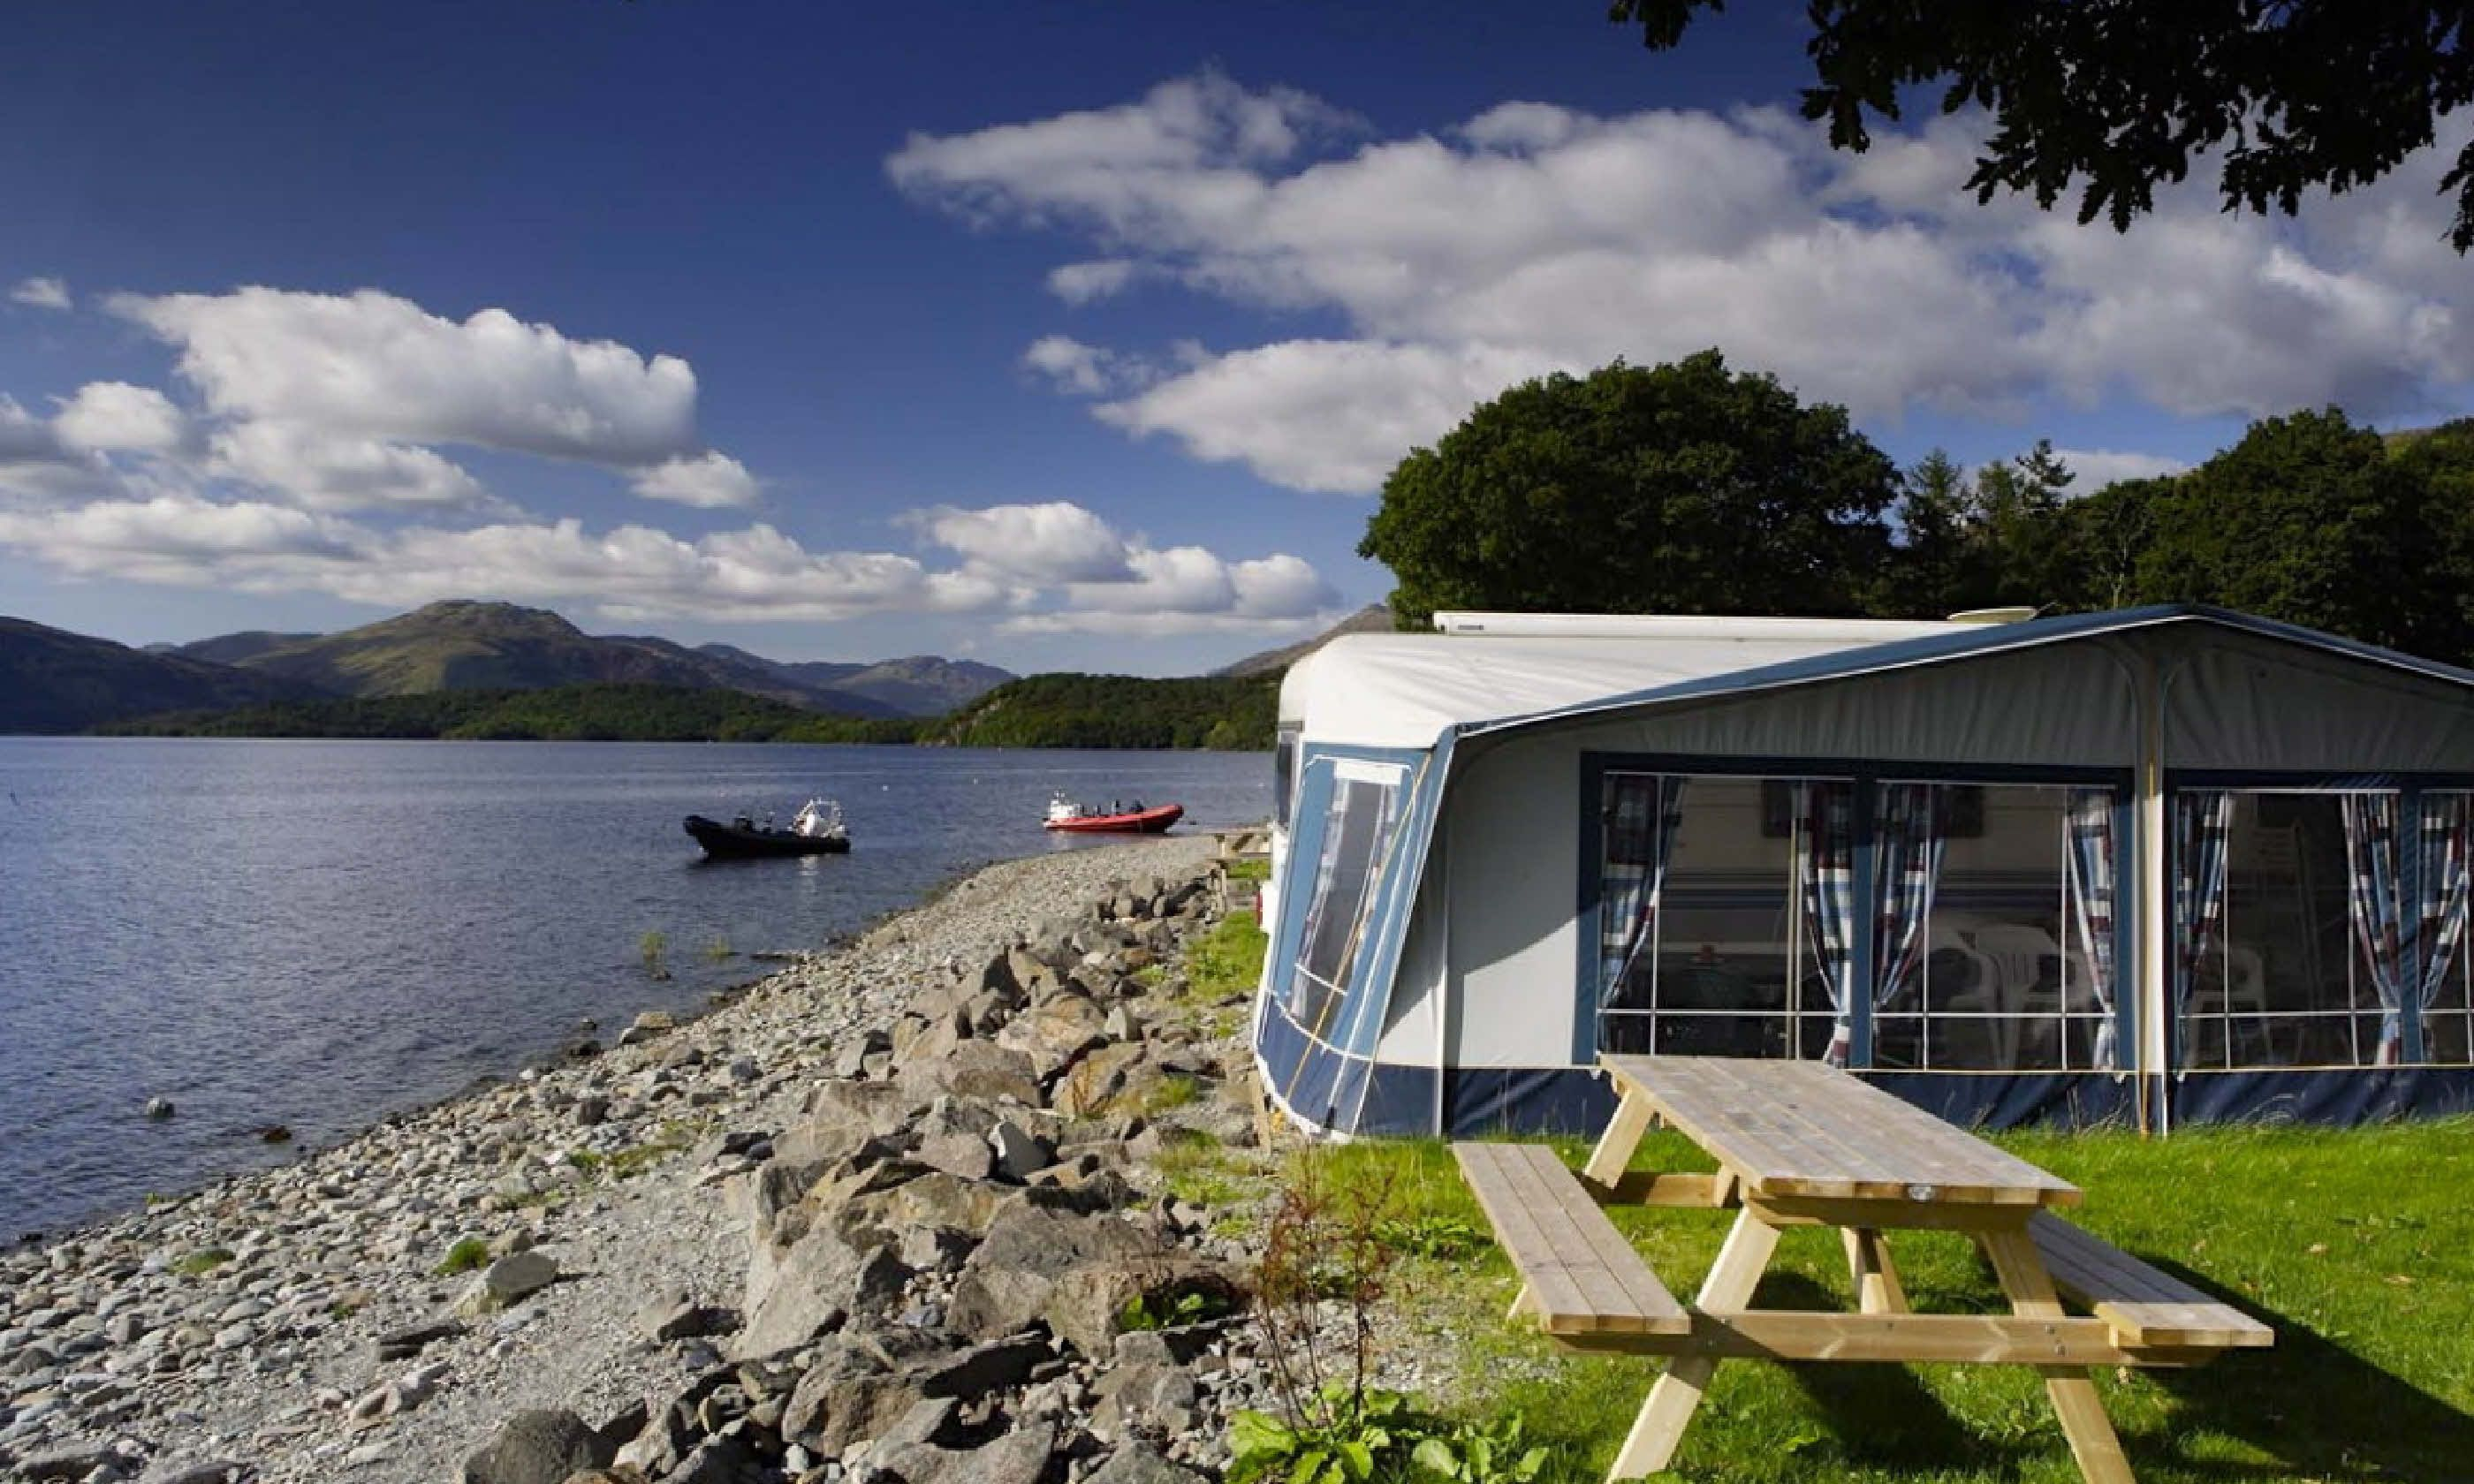 Whatu0027s allowed Tents caravans motorhomes trailer tents and dogs u2013 yes. Amenities 168 pitches of standard premium and select types. & Scotlandu0027s 7 best campsites | Wanderlust